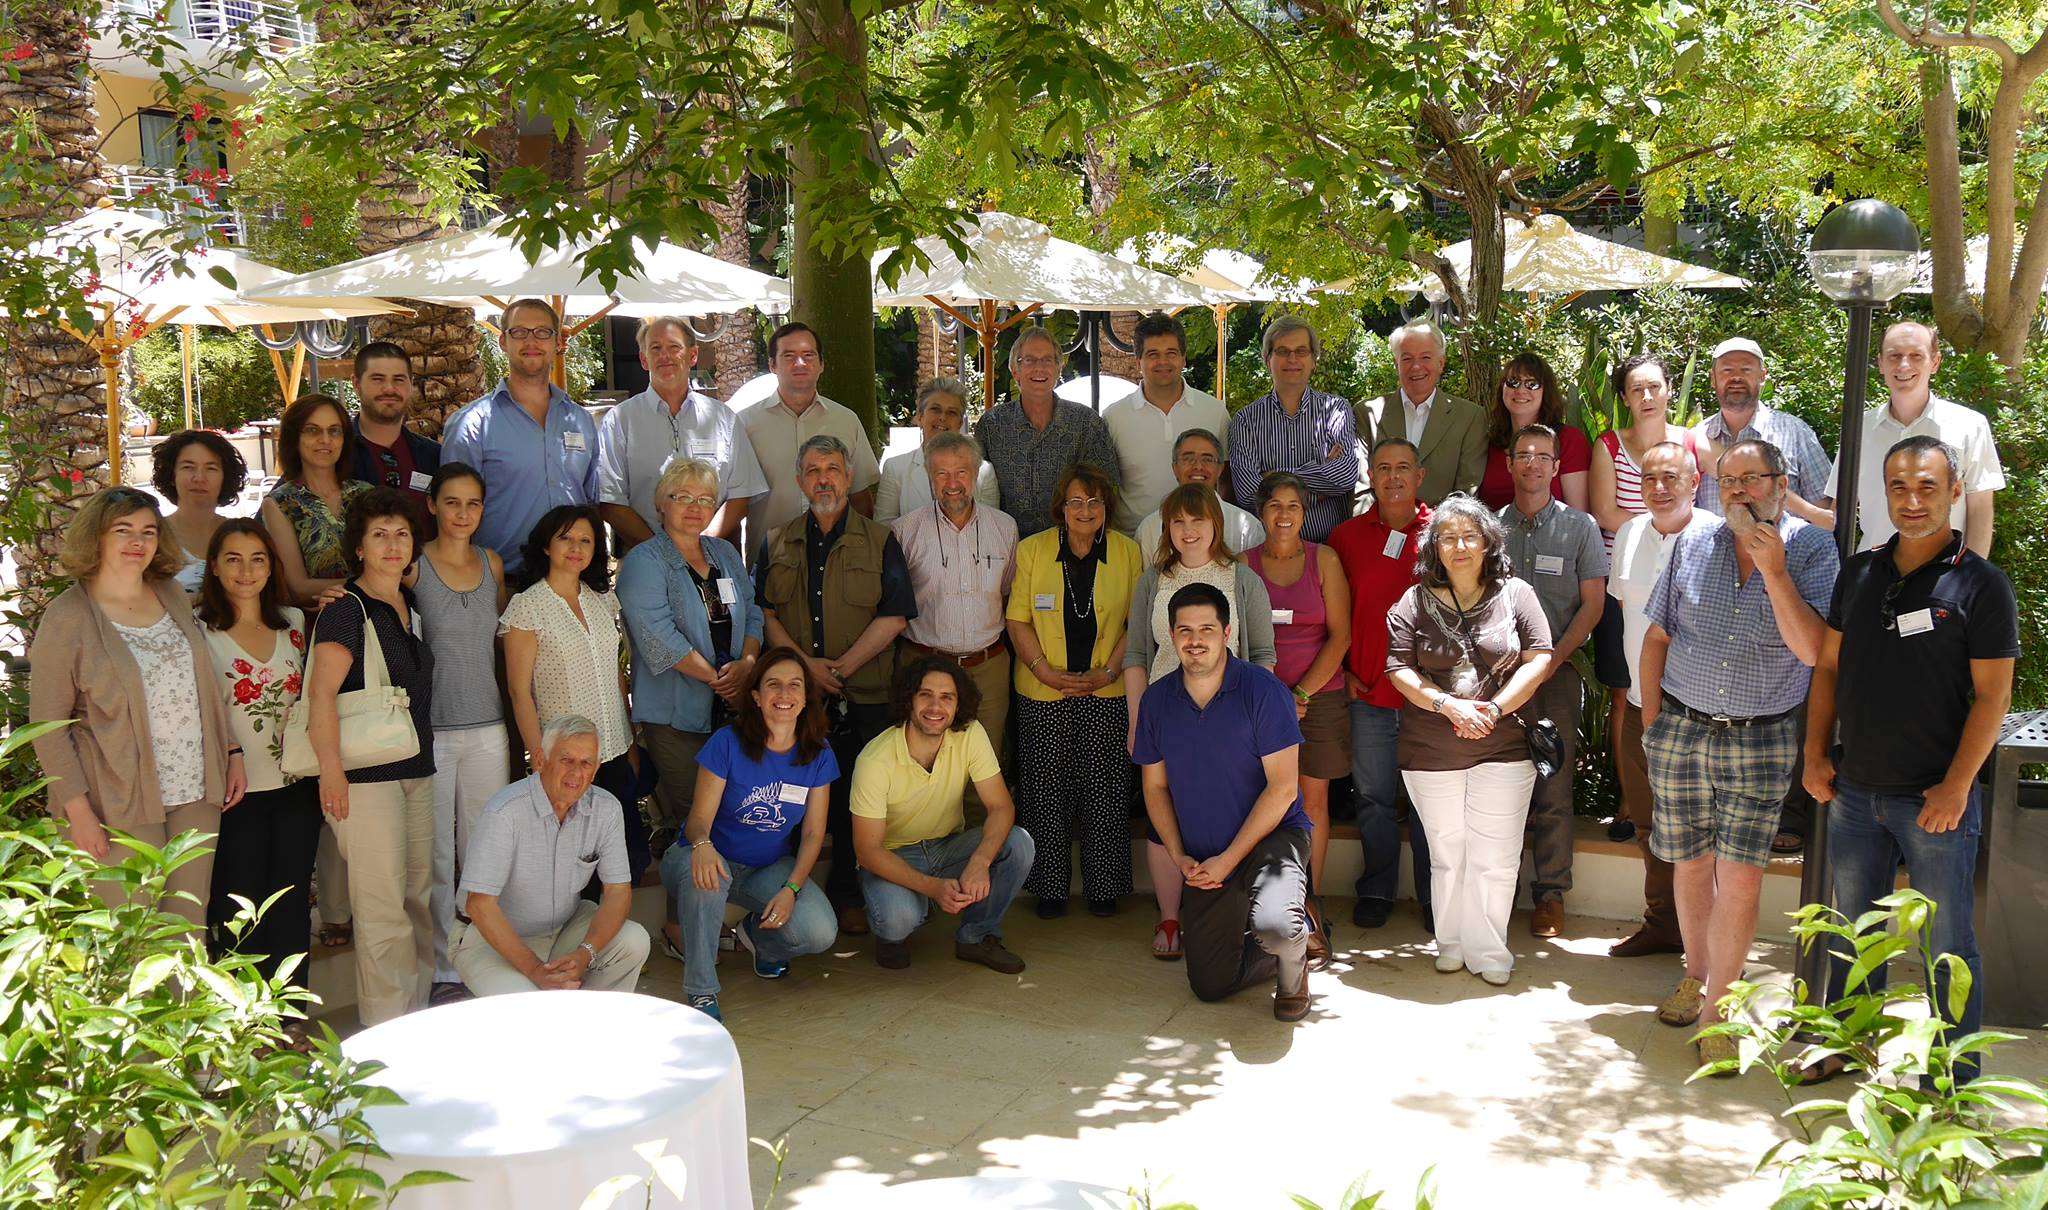 Final Event Group Photo